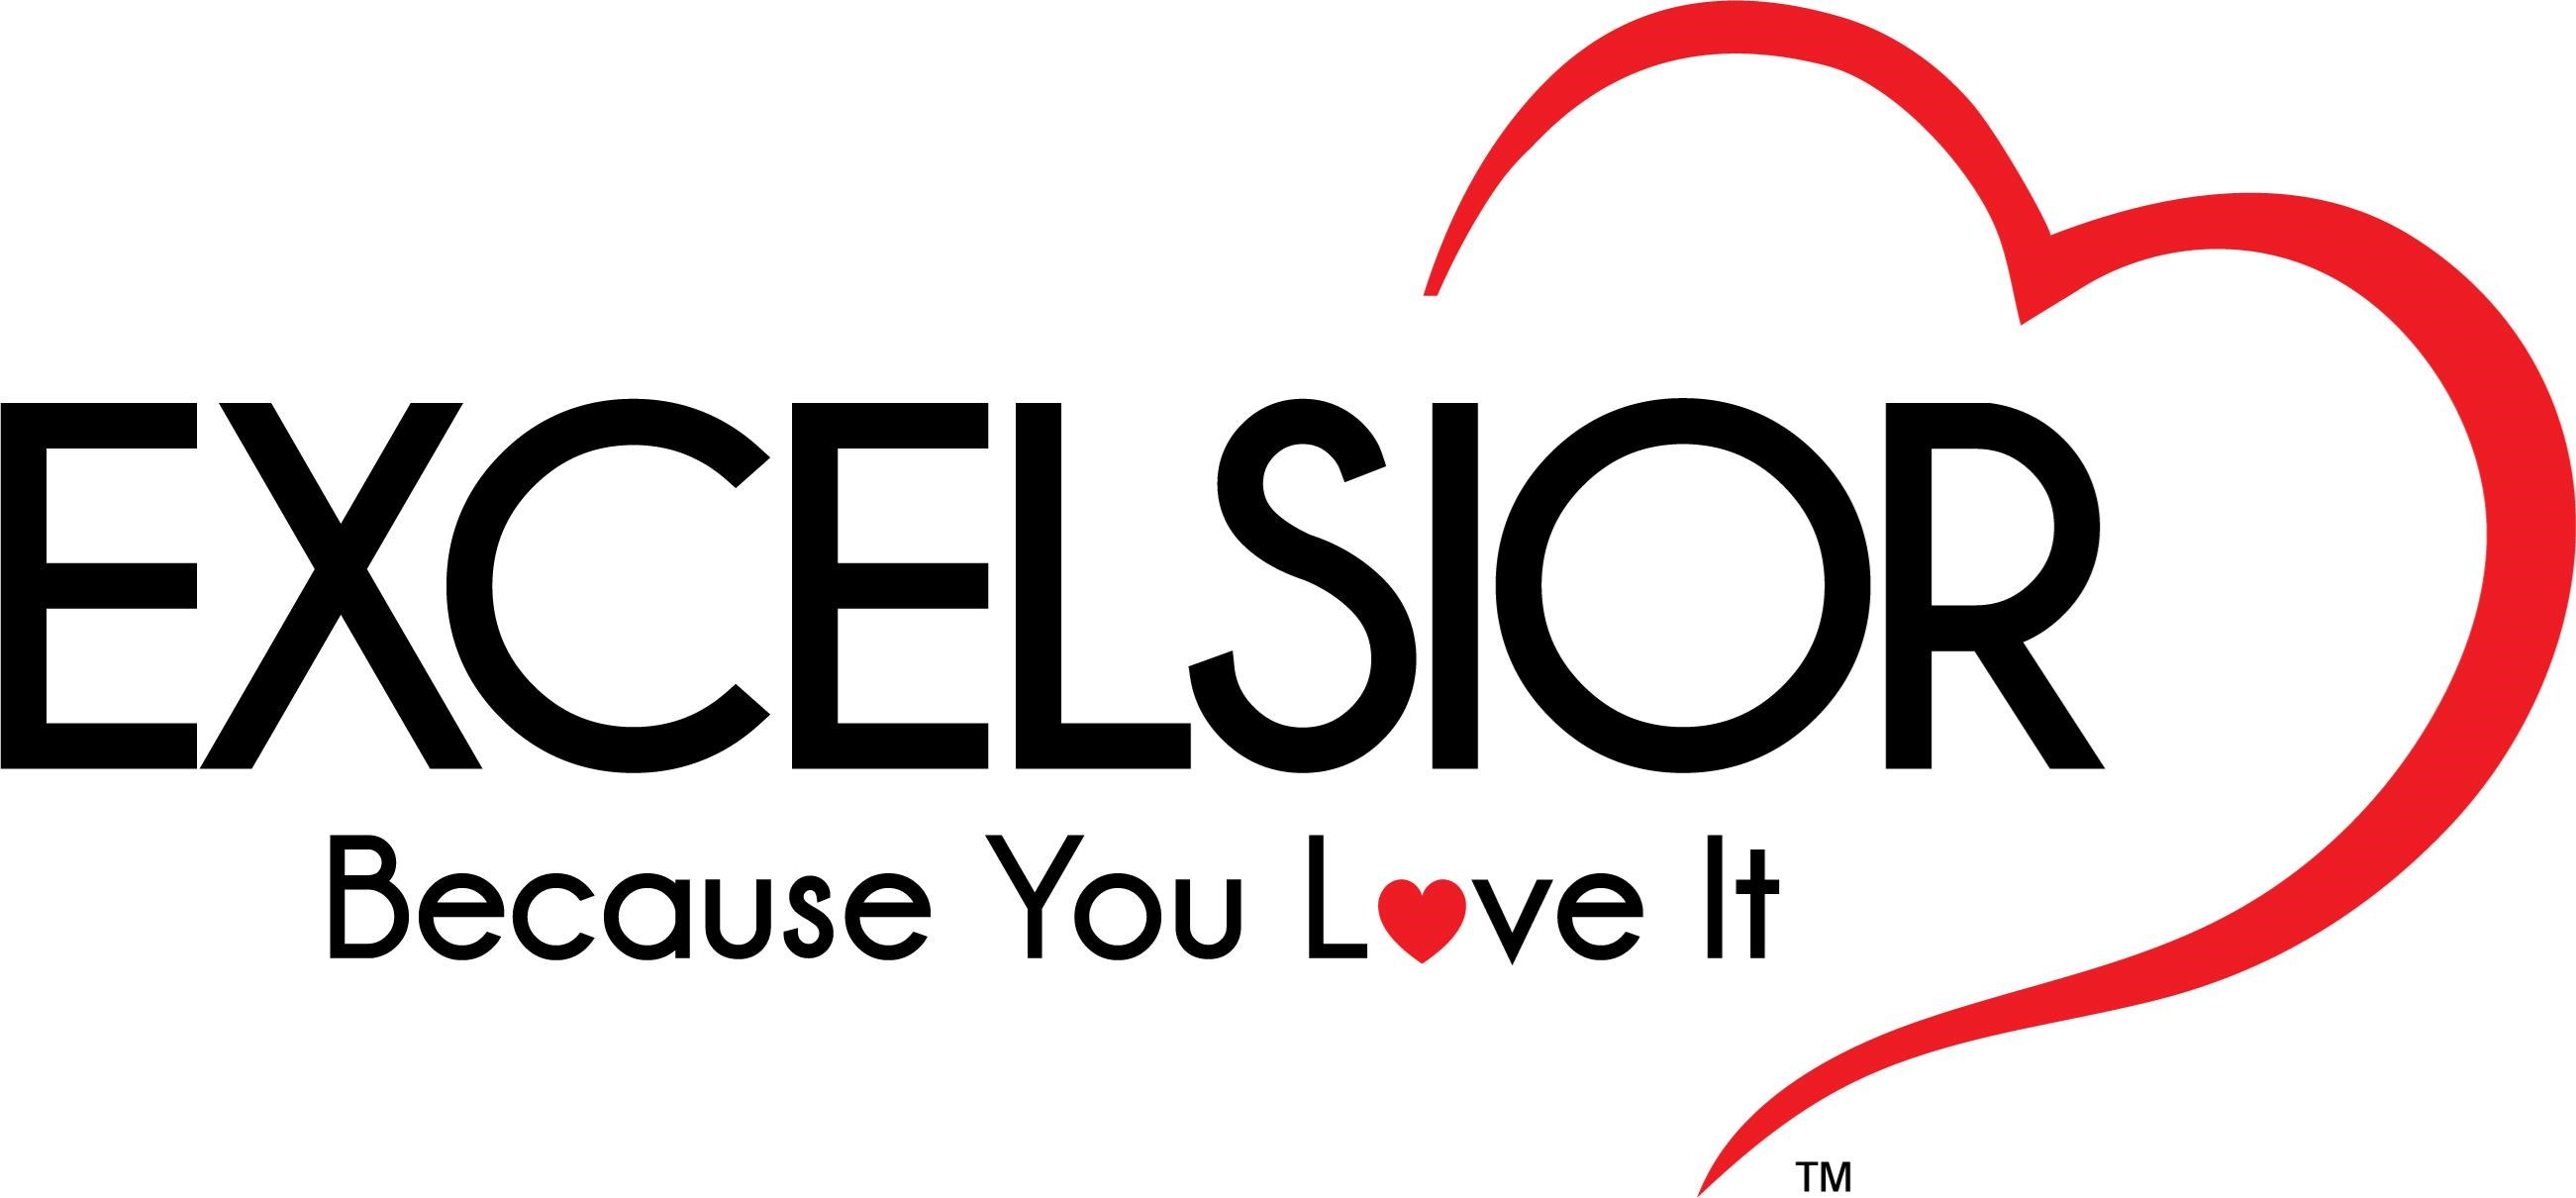 Stationary Furniture Stationary Furniture Protection $5001-$6000 by Excelsior at C. S. Wo & Sons California